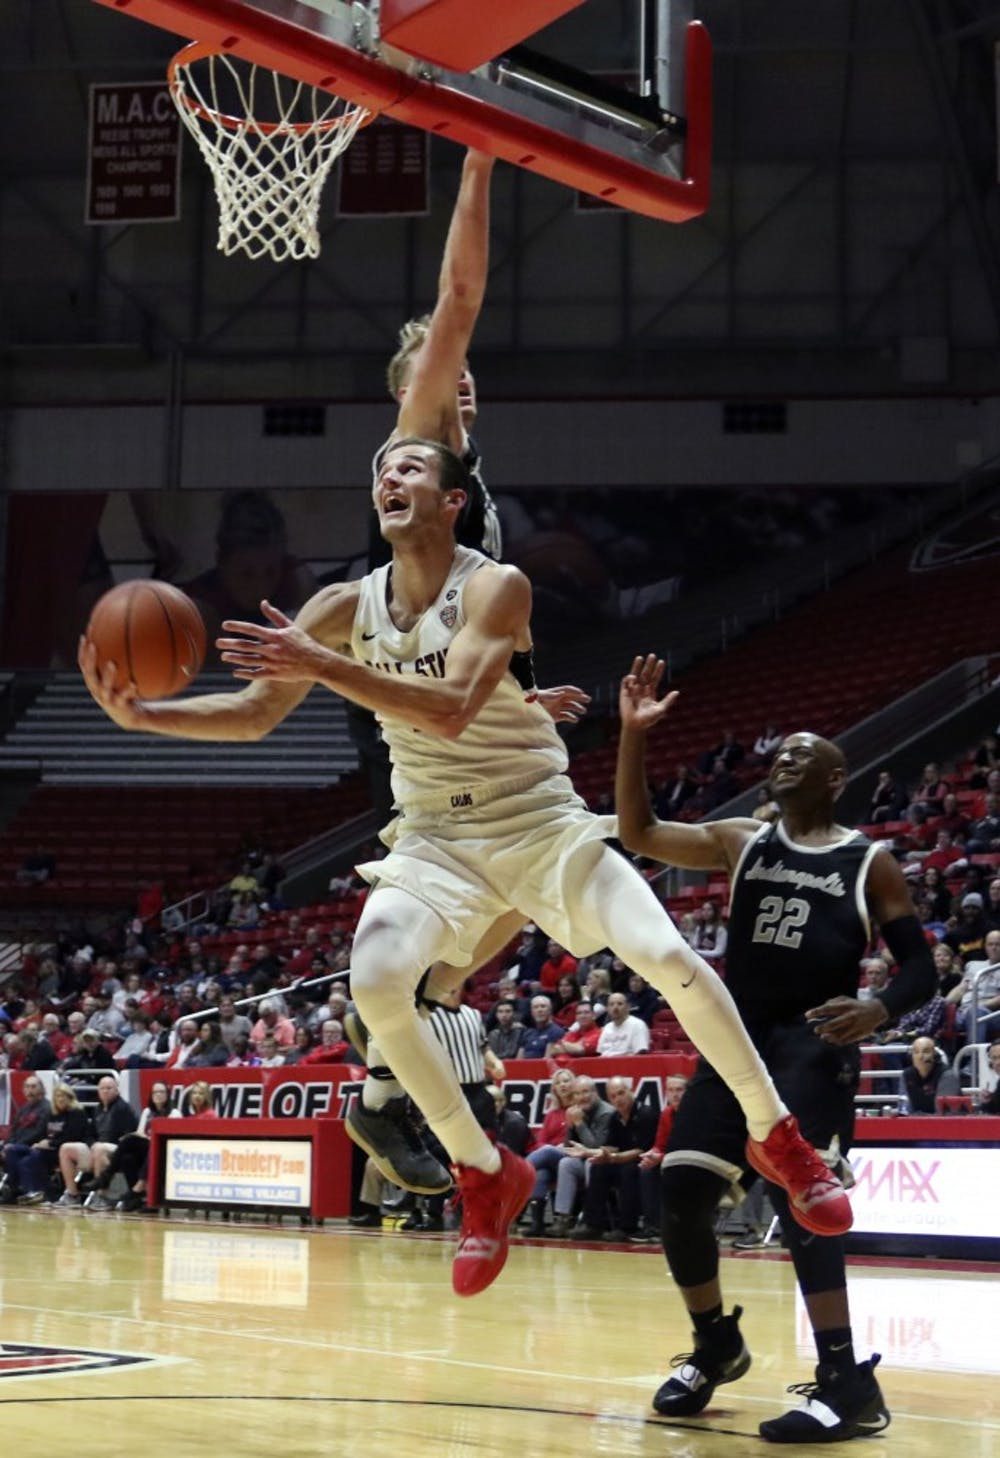 <p>Ball State junior forward Kyle Mallers shoots a layup during the Cardinals' exhibition game against University of Indianapolis Nov. 2, 2018, in John E. Worthen Arena. Mallers was the team's leading scorer with 25 points. <strong>Paige Grider, DN</strong></p>